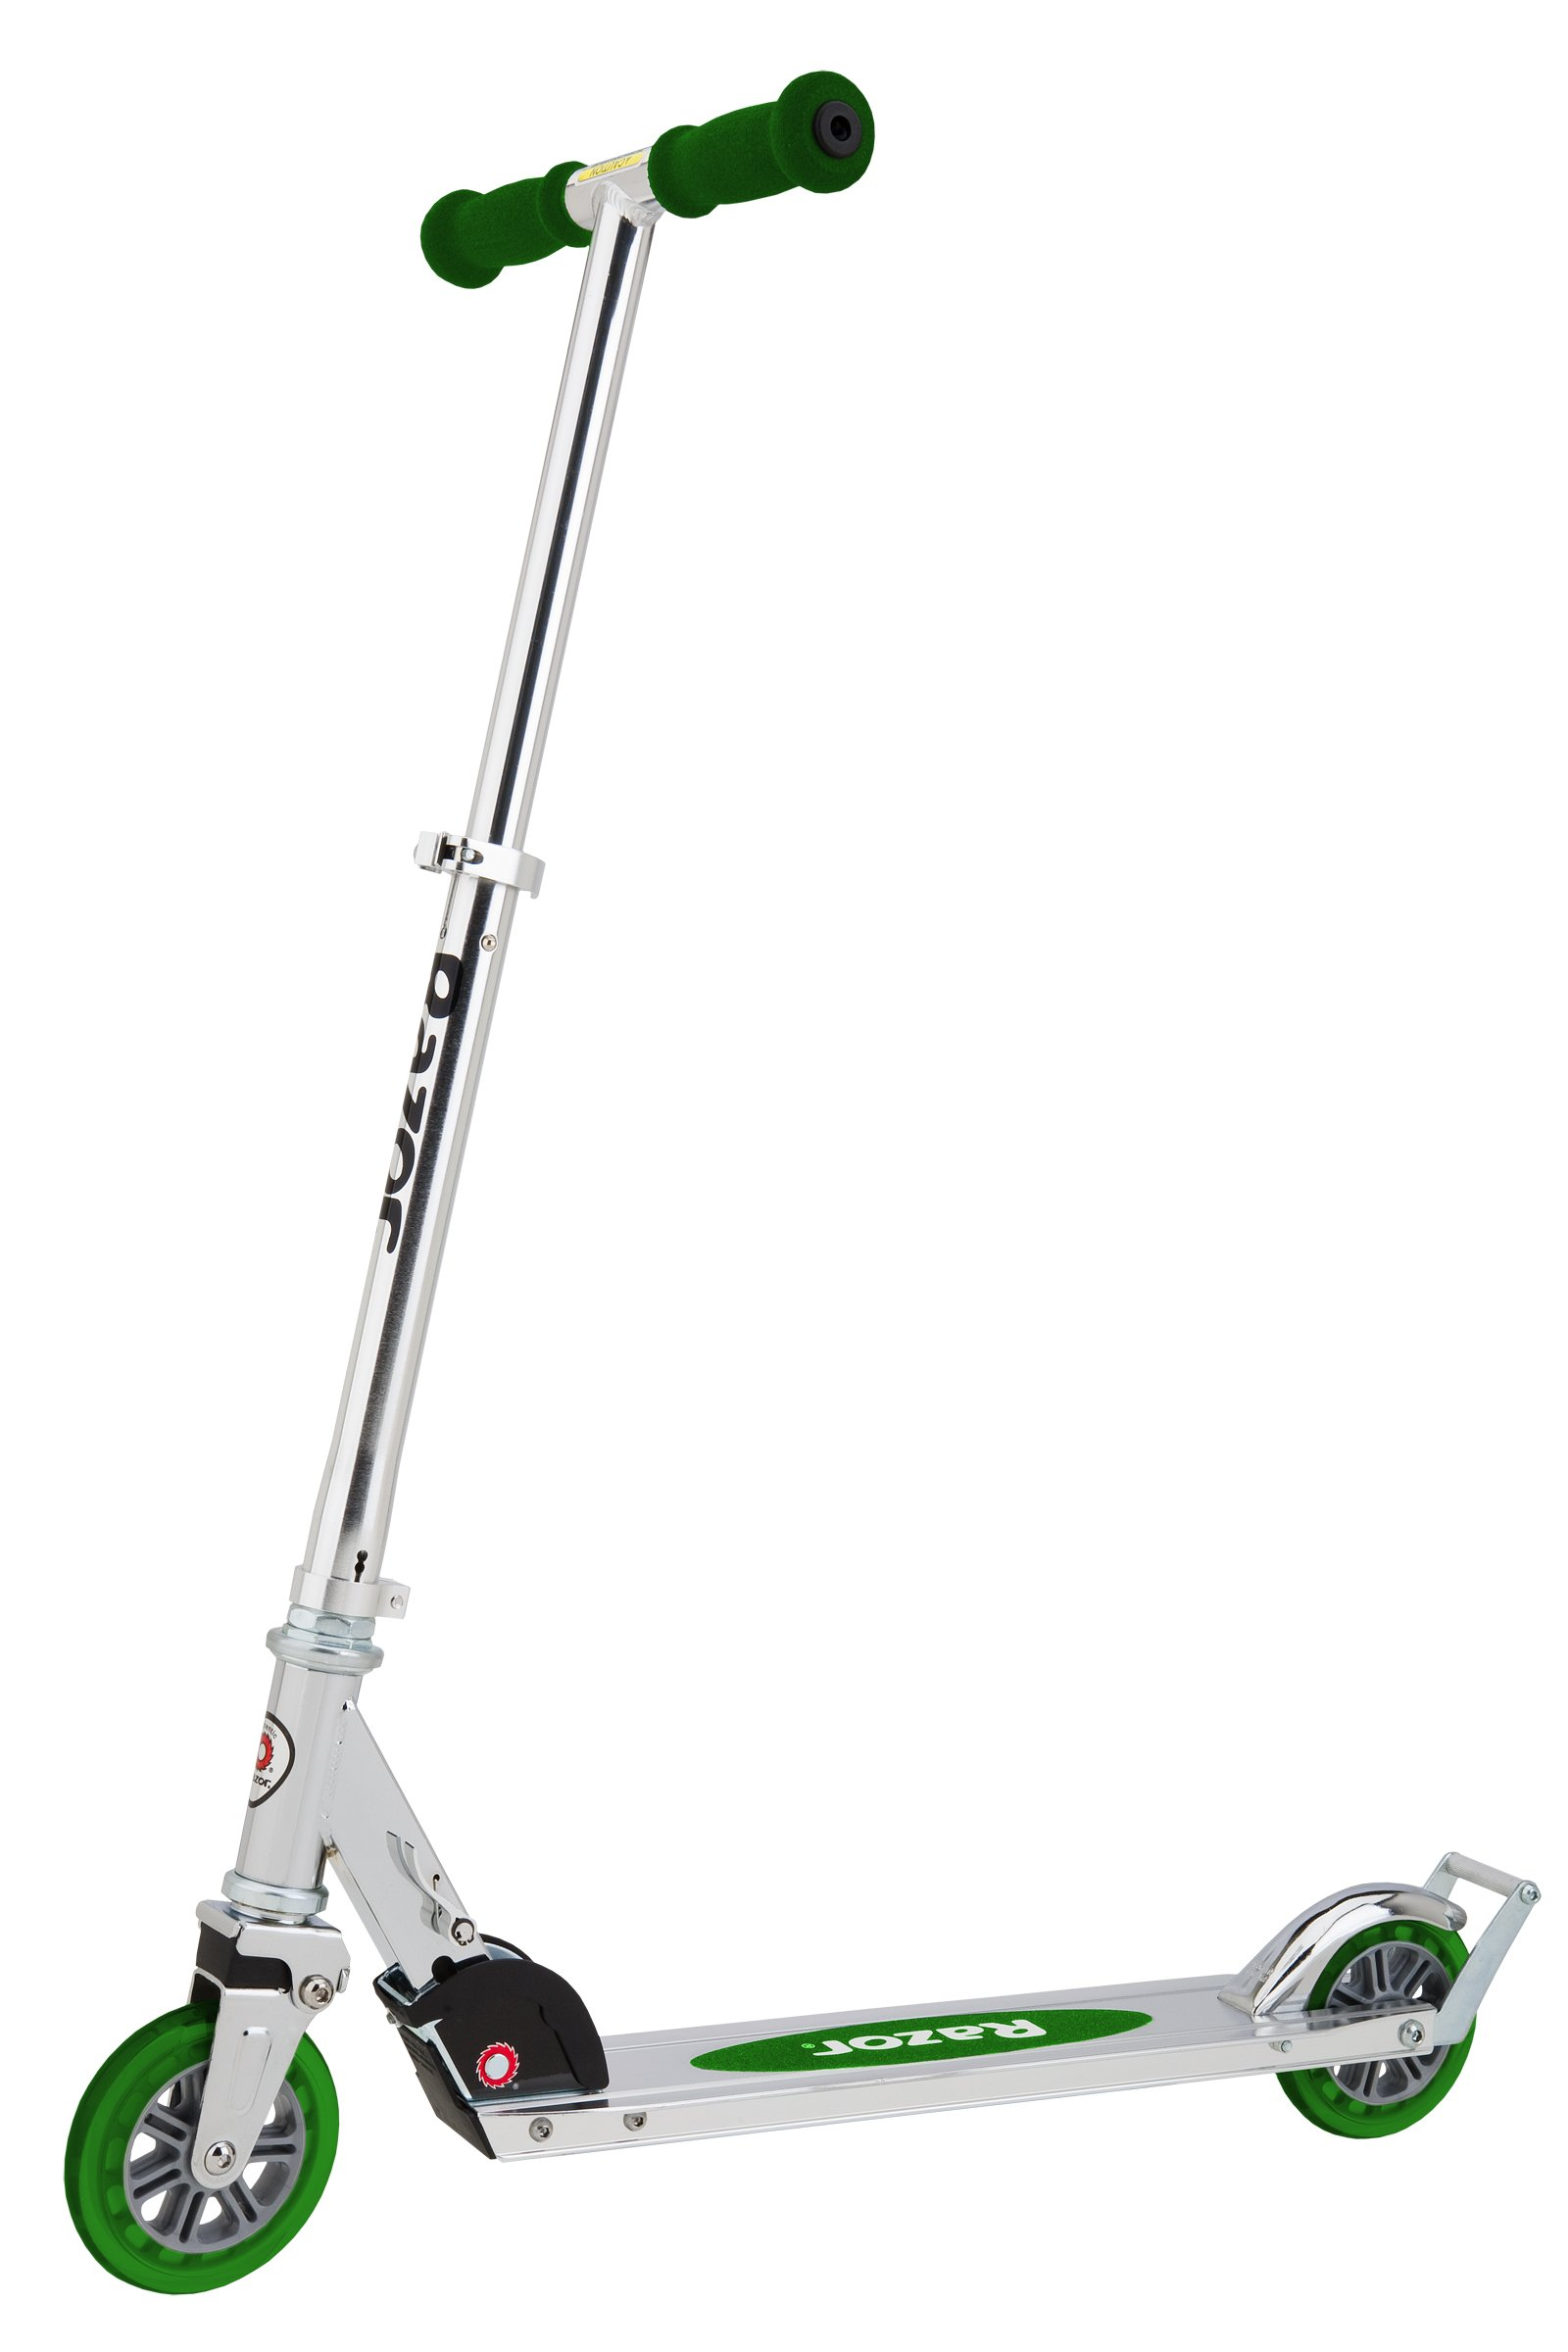 Razor A3 Kick Scooter, Green, Frustration Free Packaging